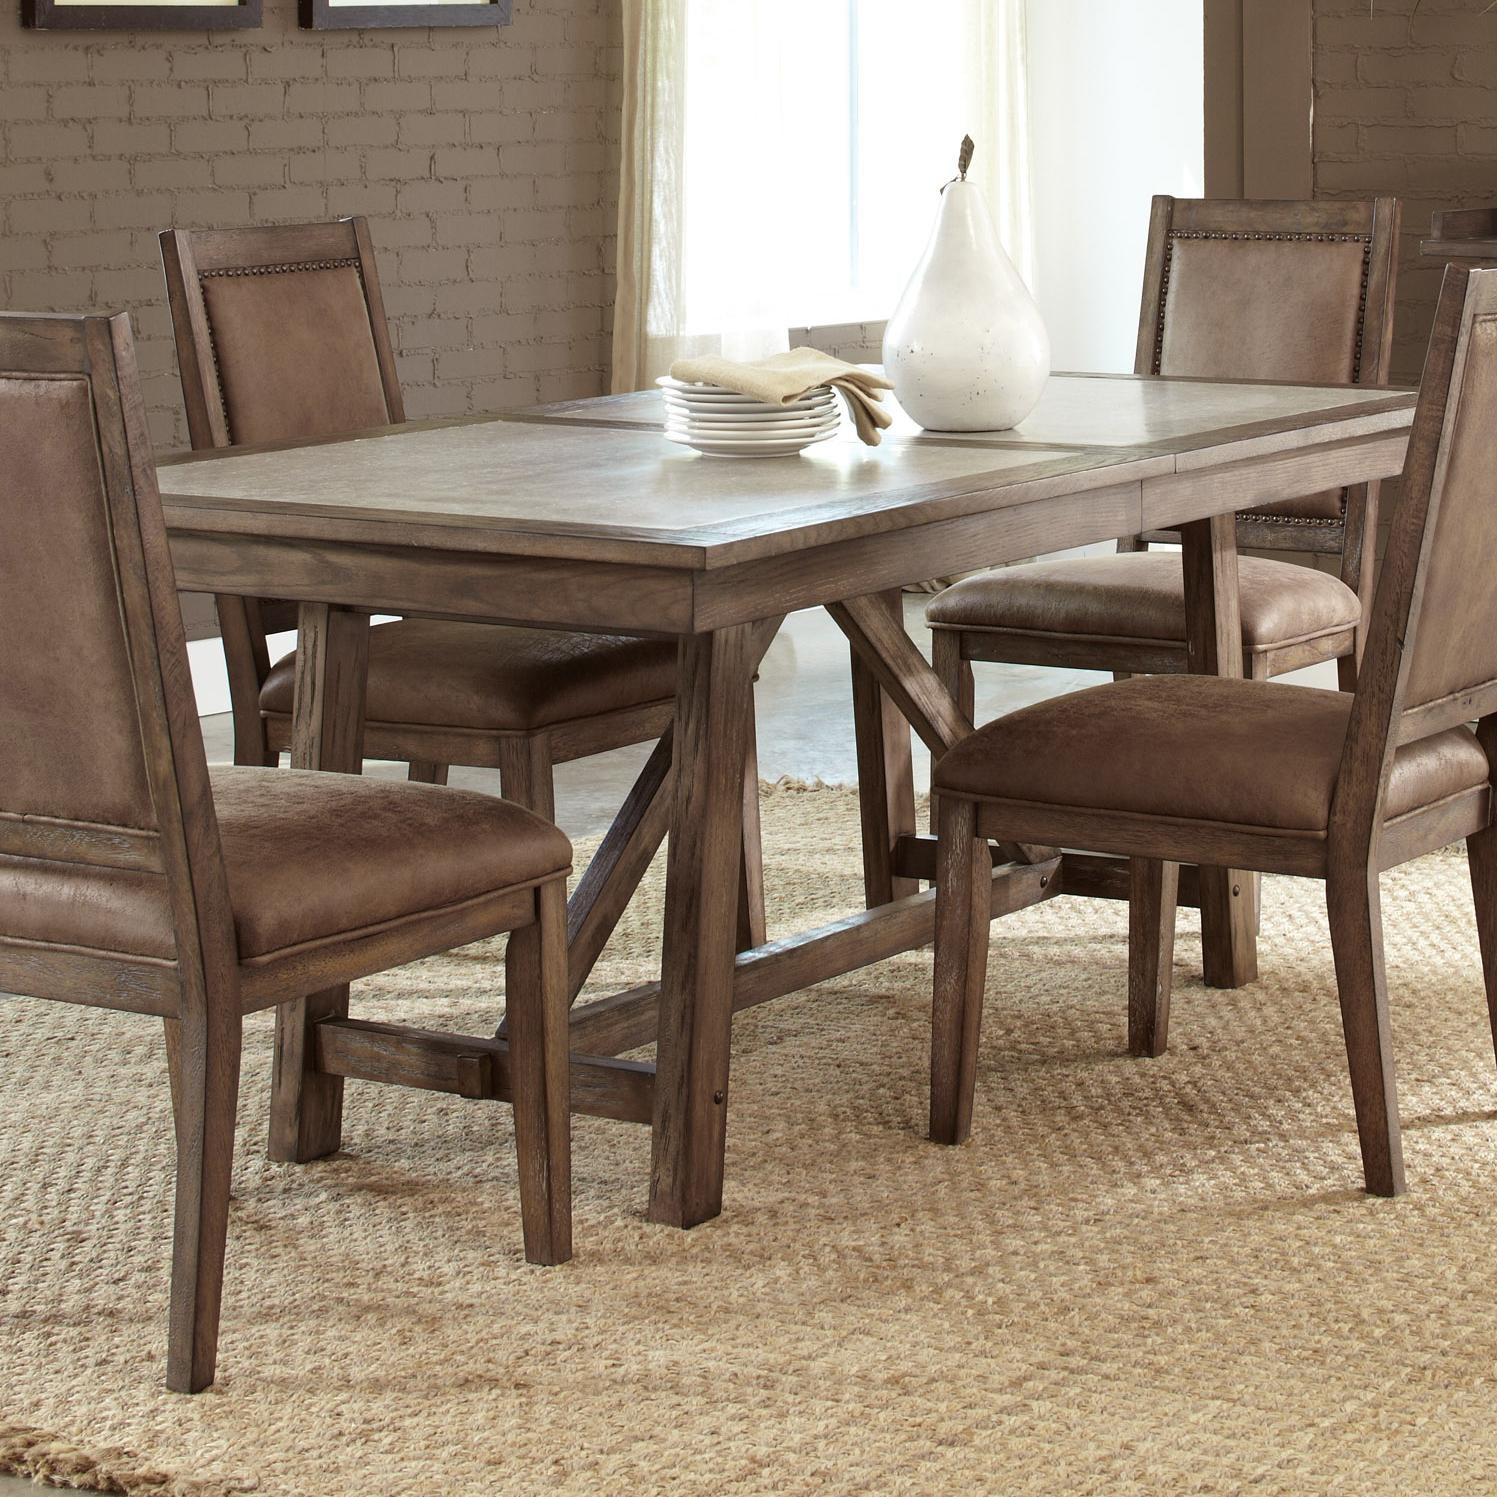 liberty furniture stone brook casual cement top trestle table kitchen plans set island